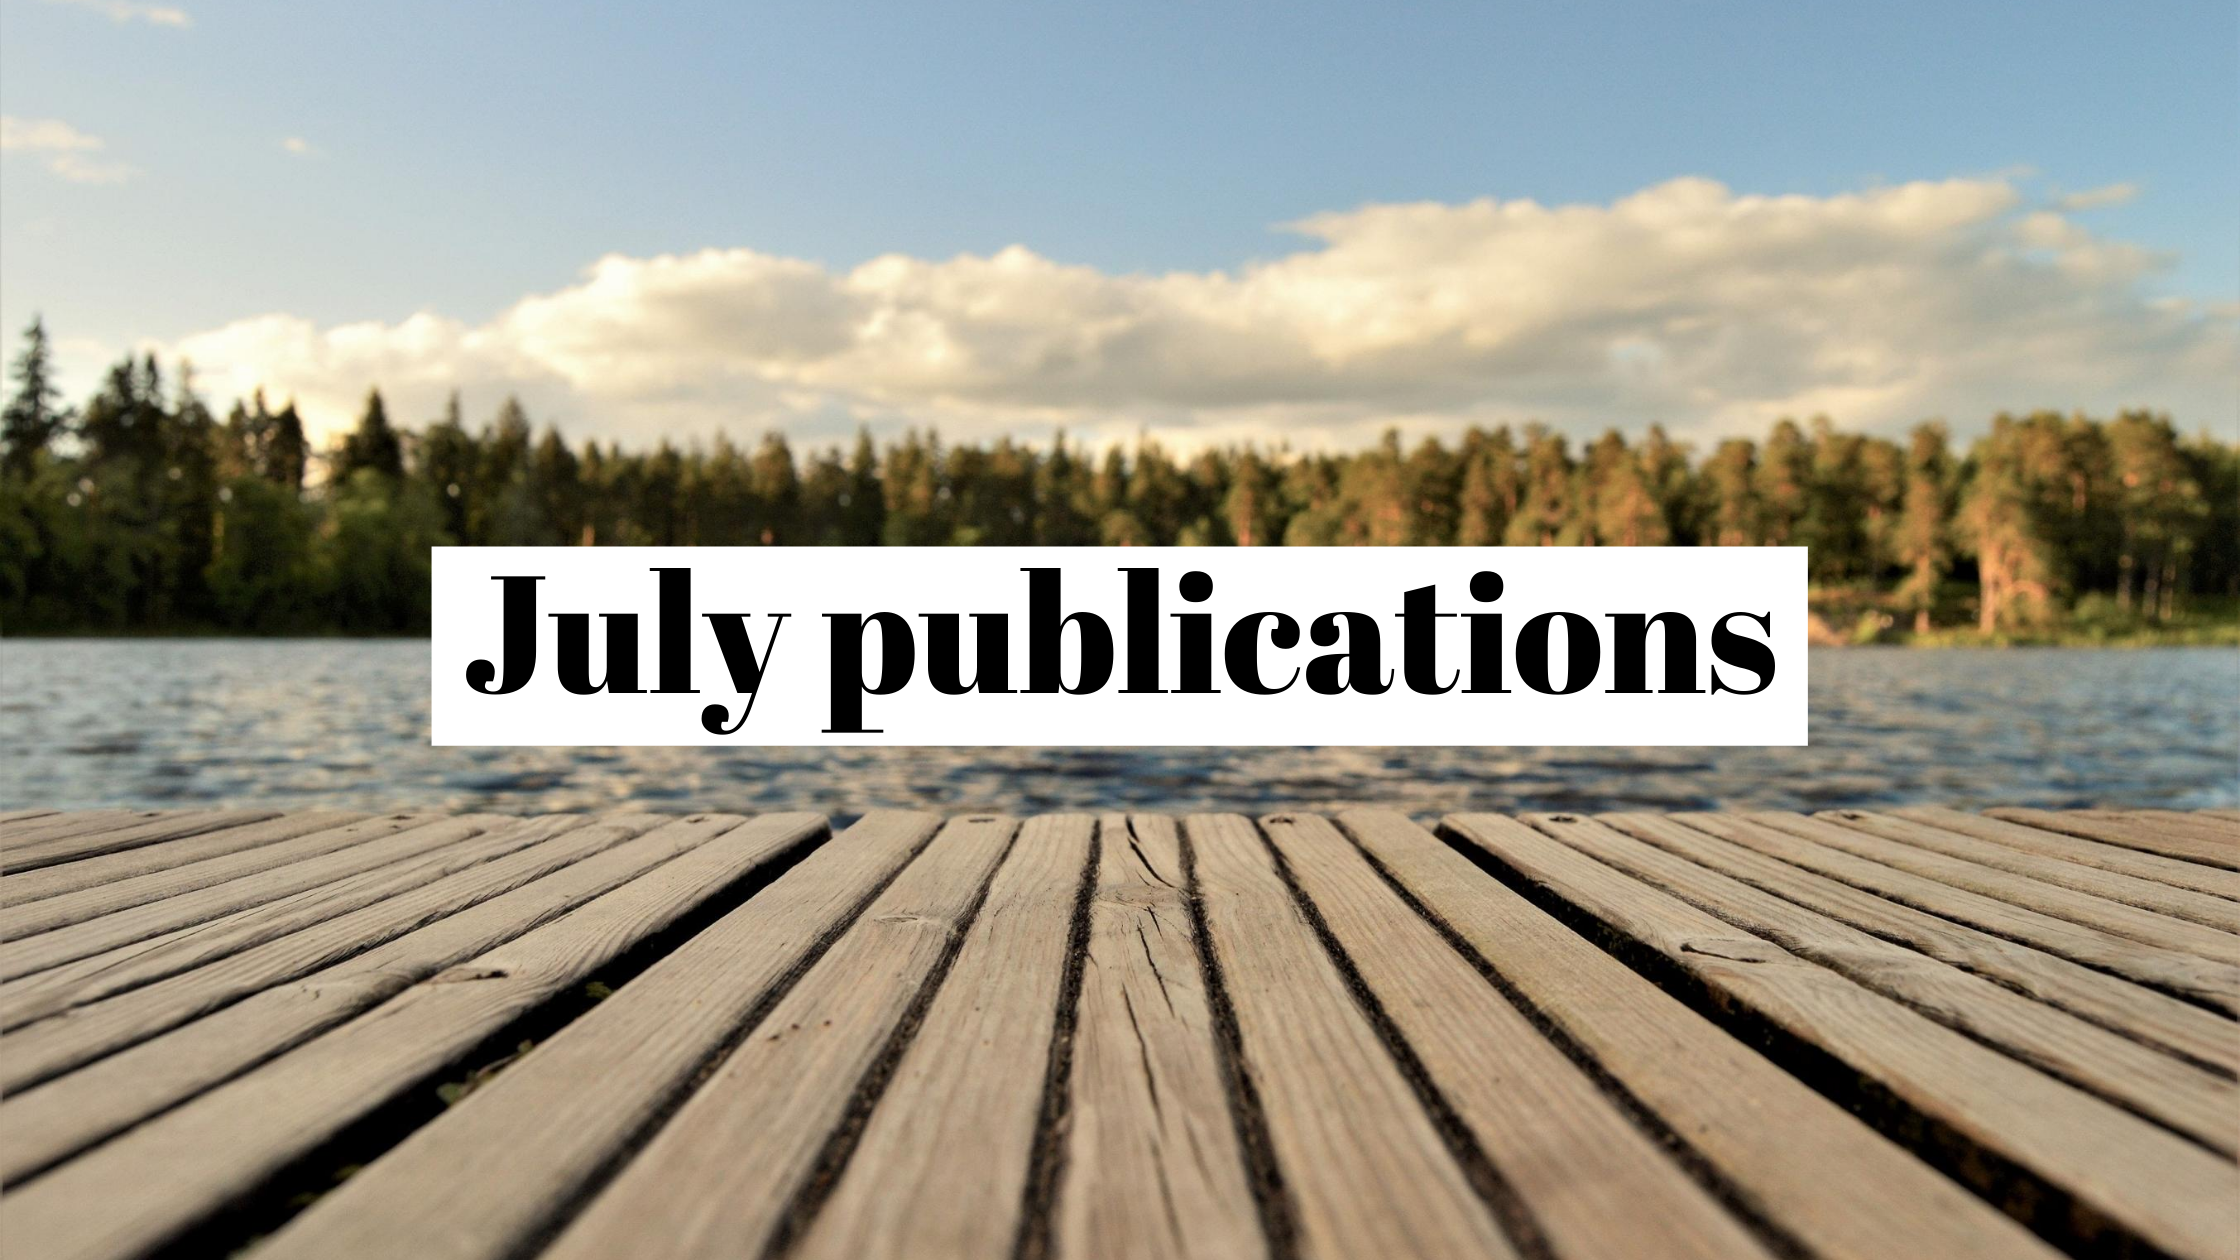 July 2020 publicity recap: Post-lockdown reality and the lessons learned